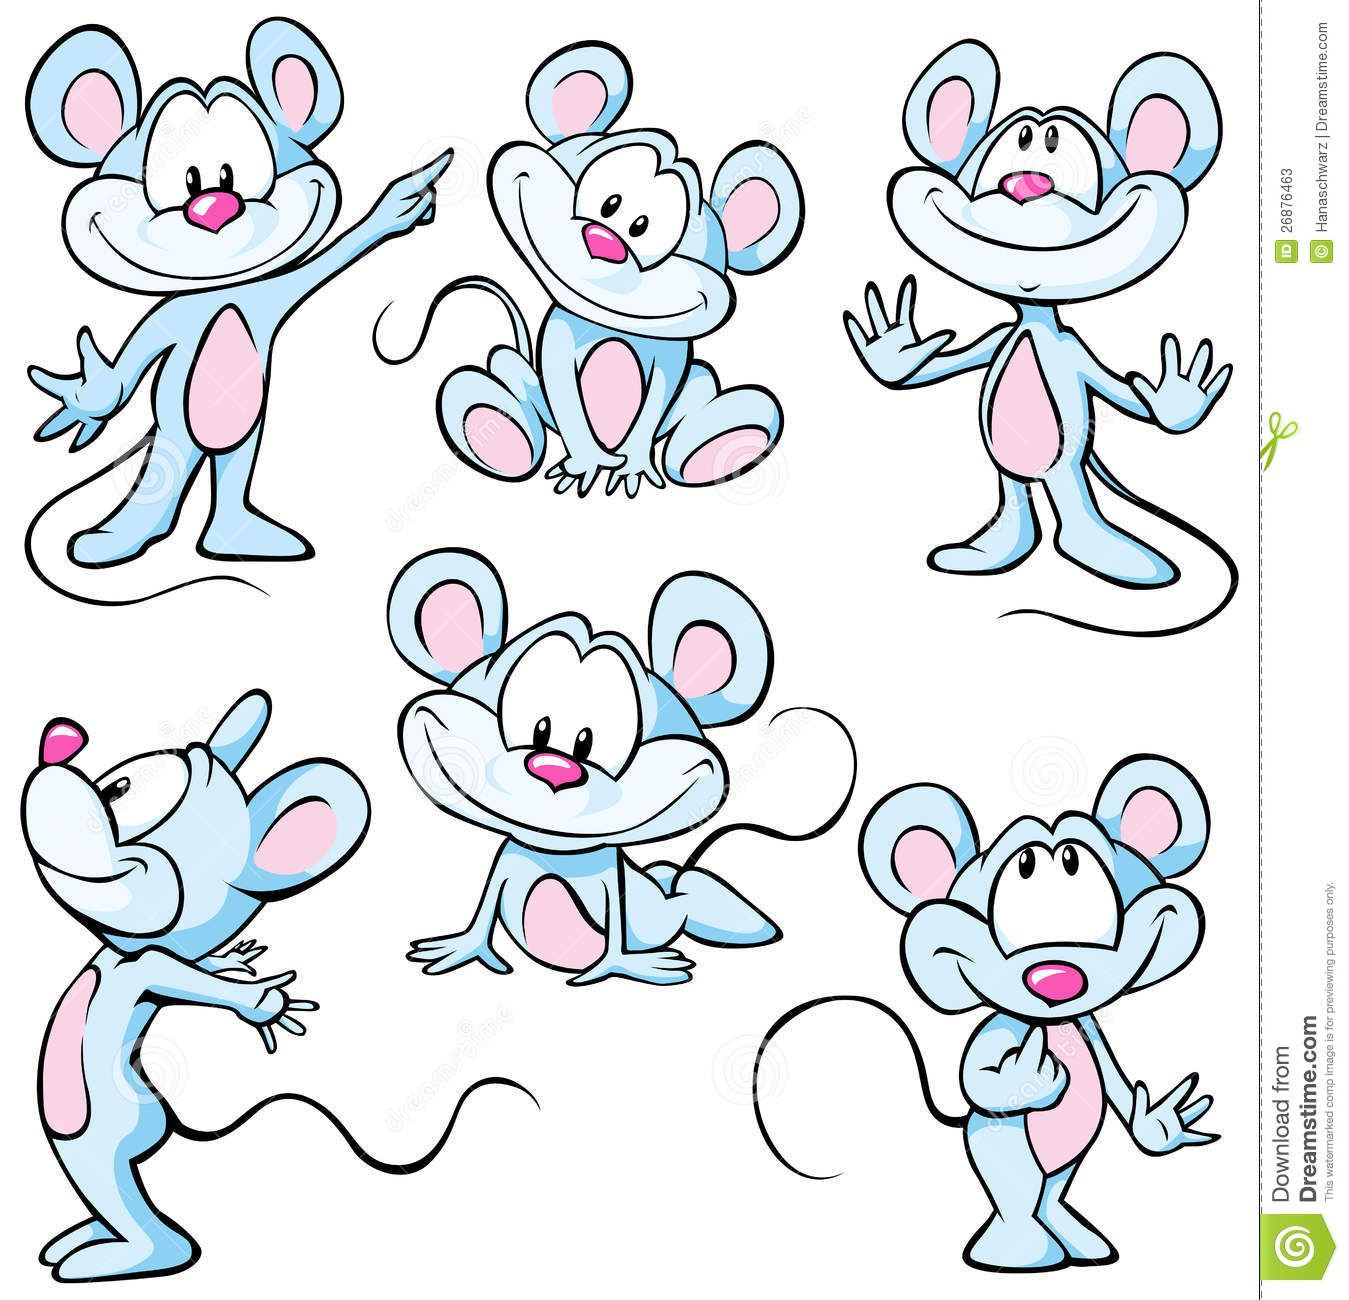 Mouses lindos